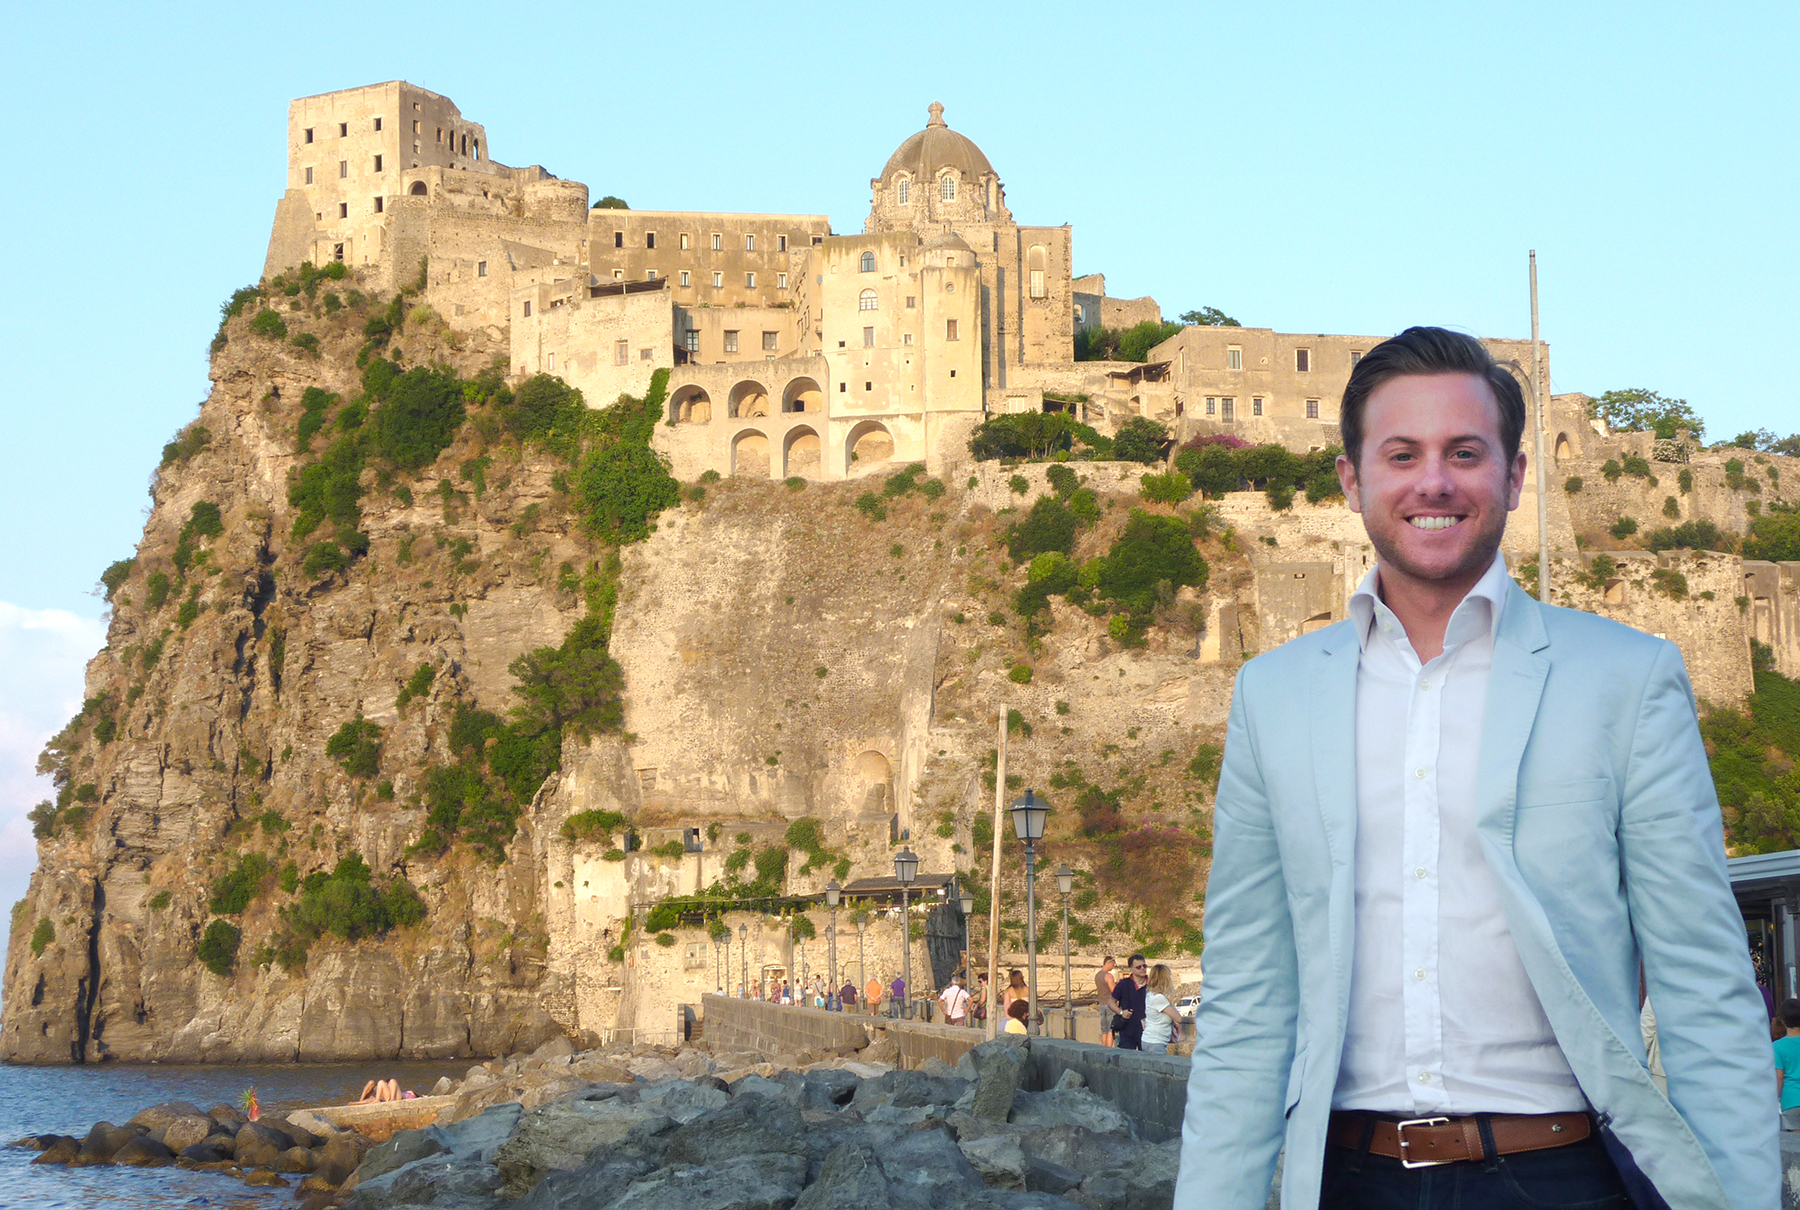 Matt in front of the stunning Castello Aragonese, in Ischia, Italy, where he later performed in concert